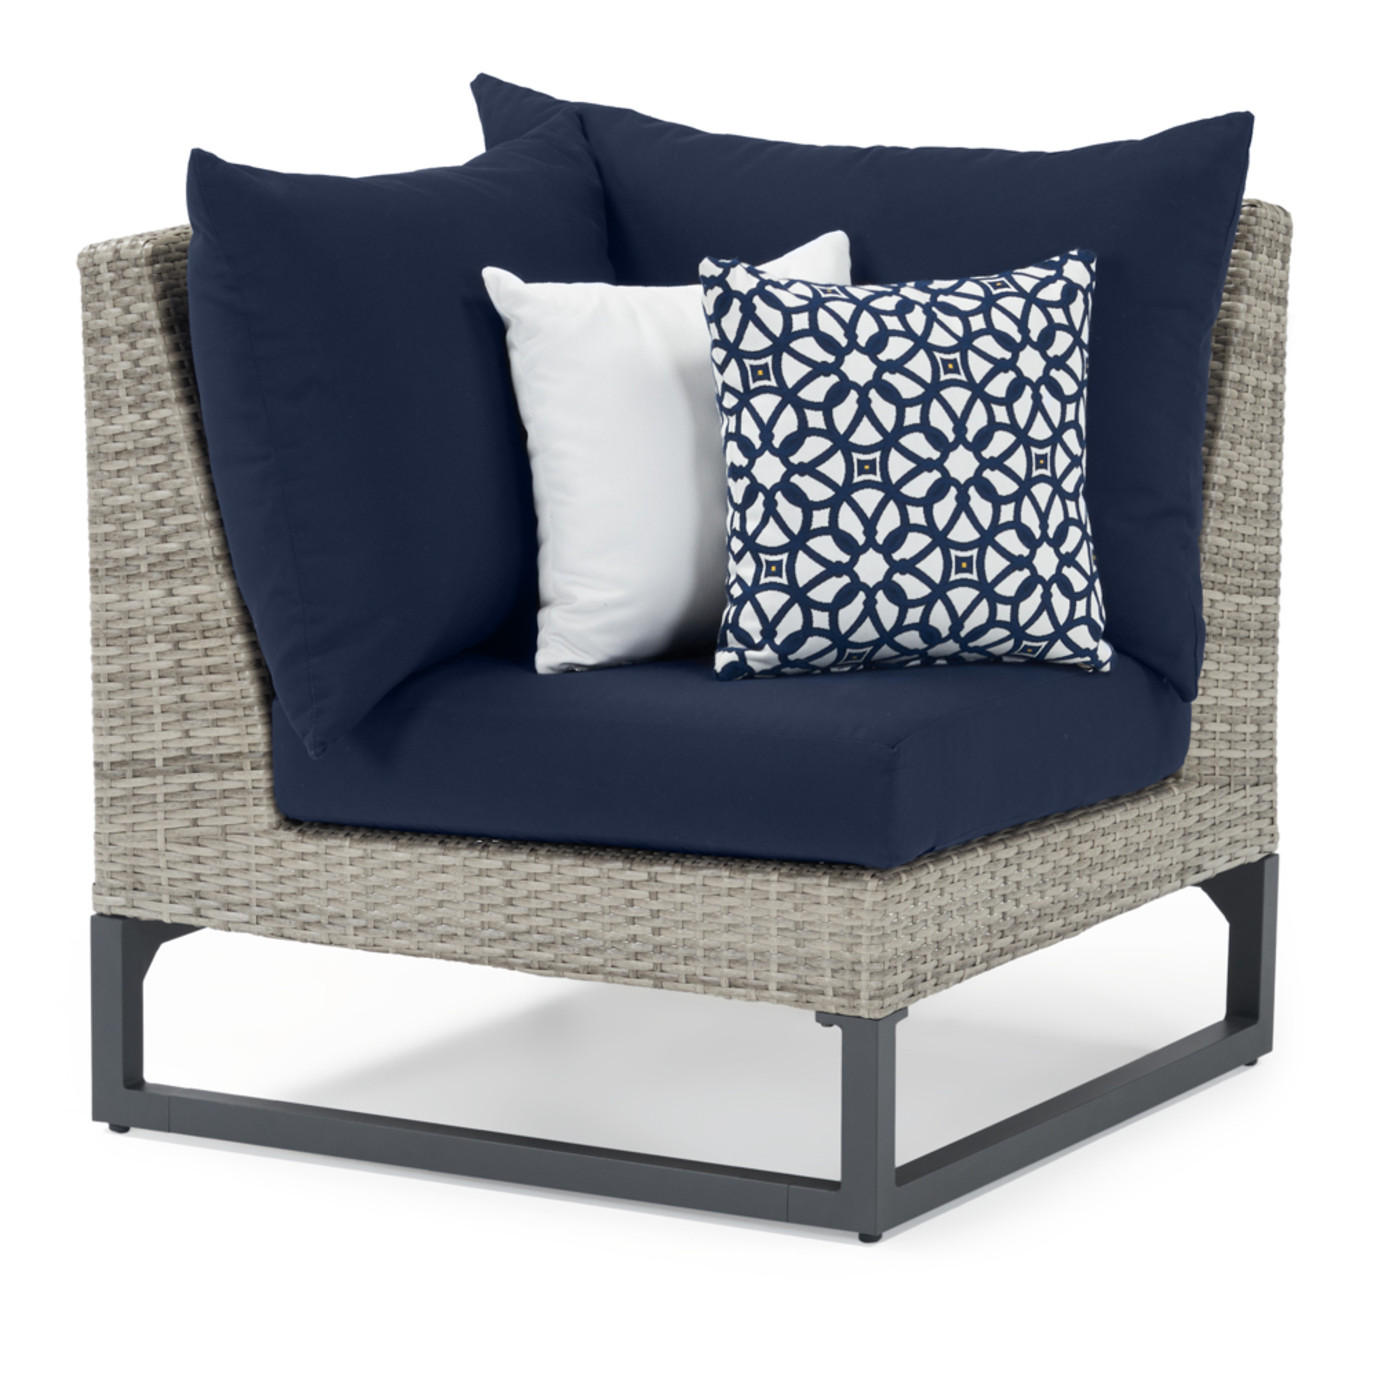 Milo Gray 6 Piece Fire Sectional - Navy Blue